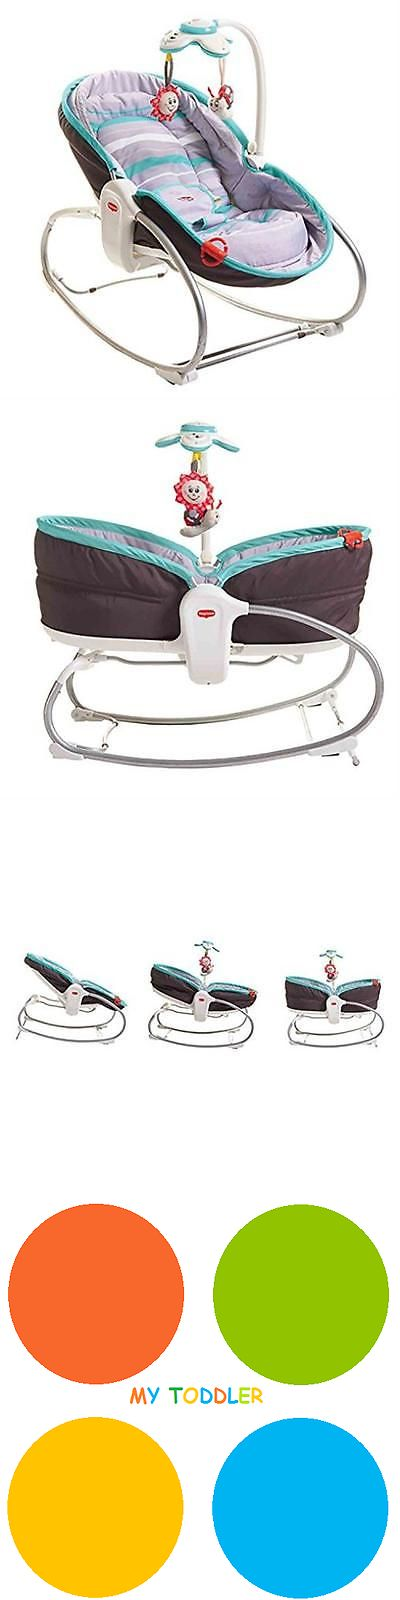 Bouncers and Vibrating Chairs 117034: Tiny Love 3-In-1 Rocker-Napper, Turquoise Mytoddler New -> BUY IT NOW ONLY: $96.93 on eBay!